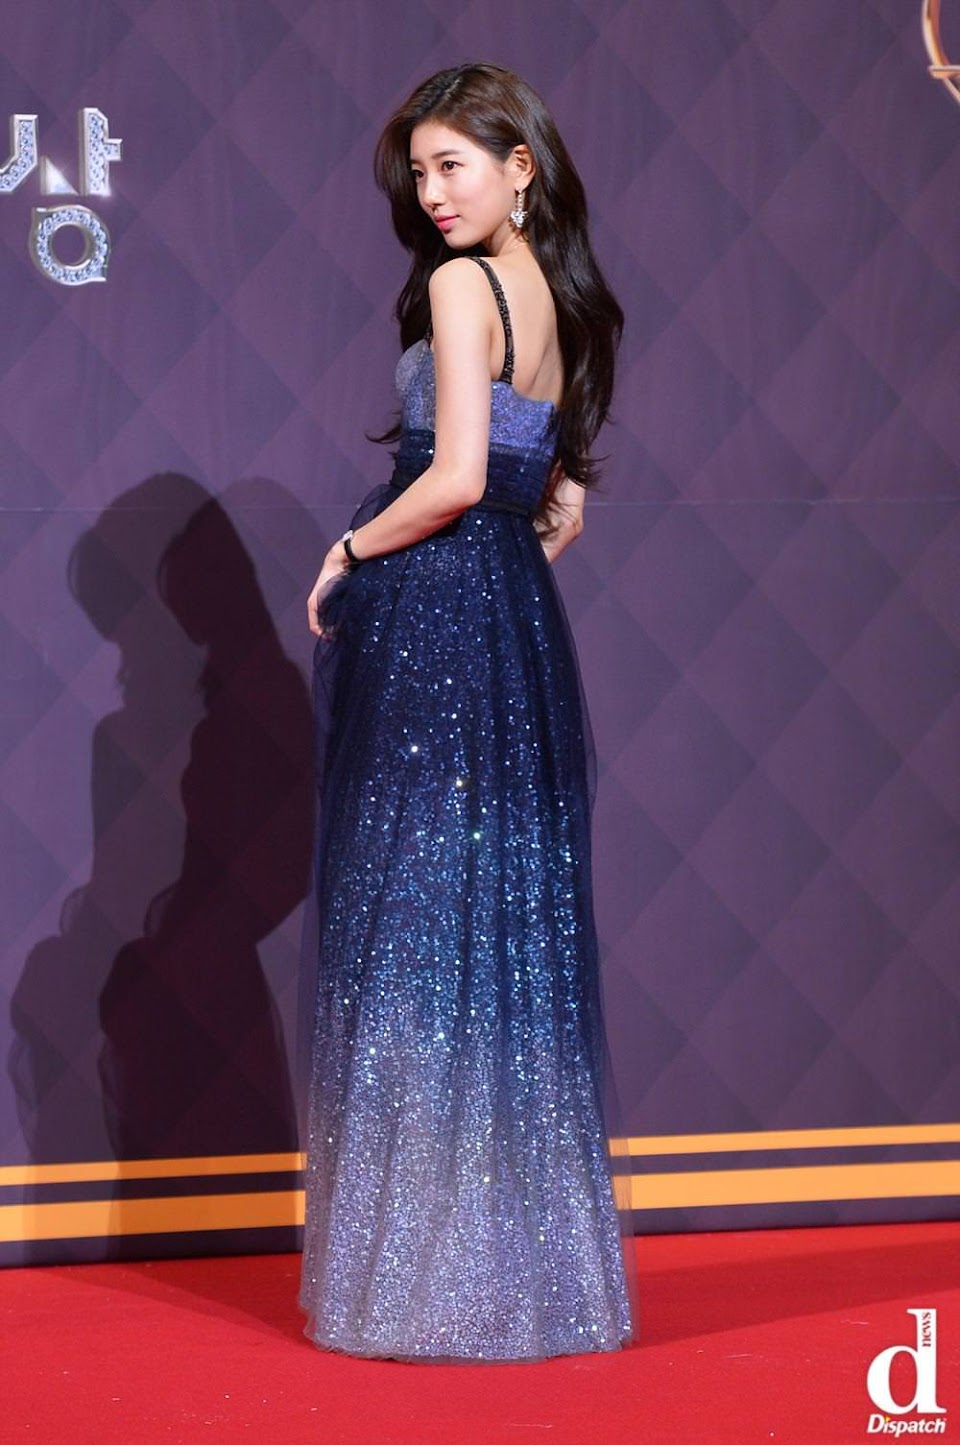 suzy gown 3